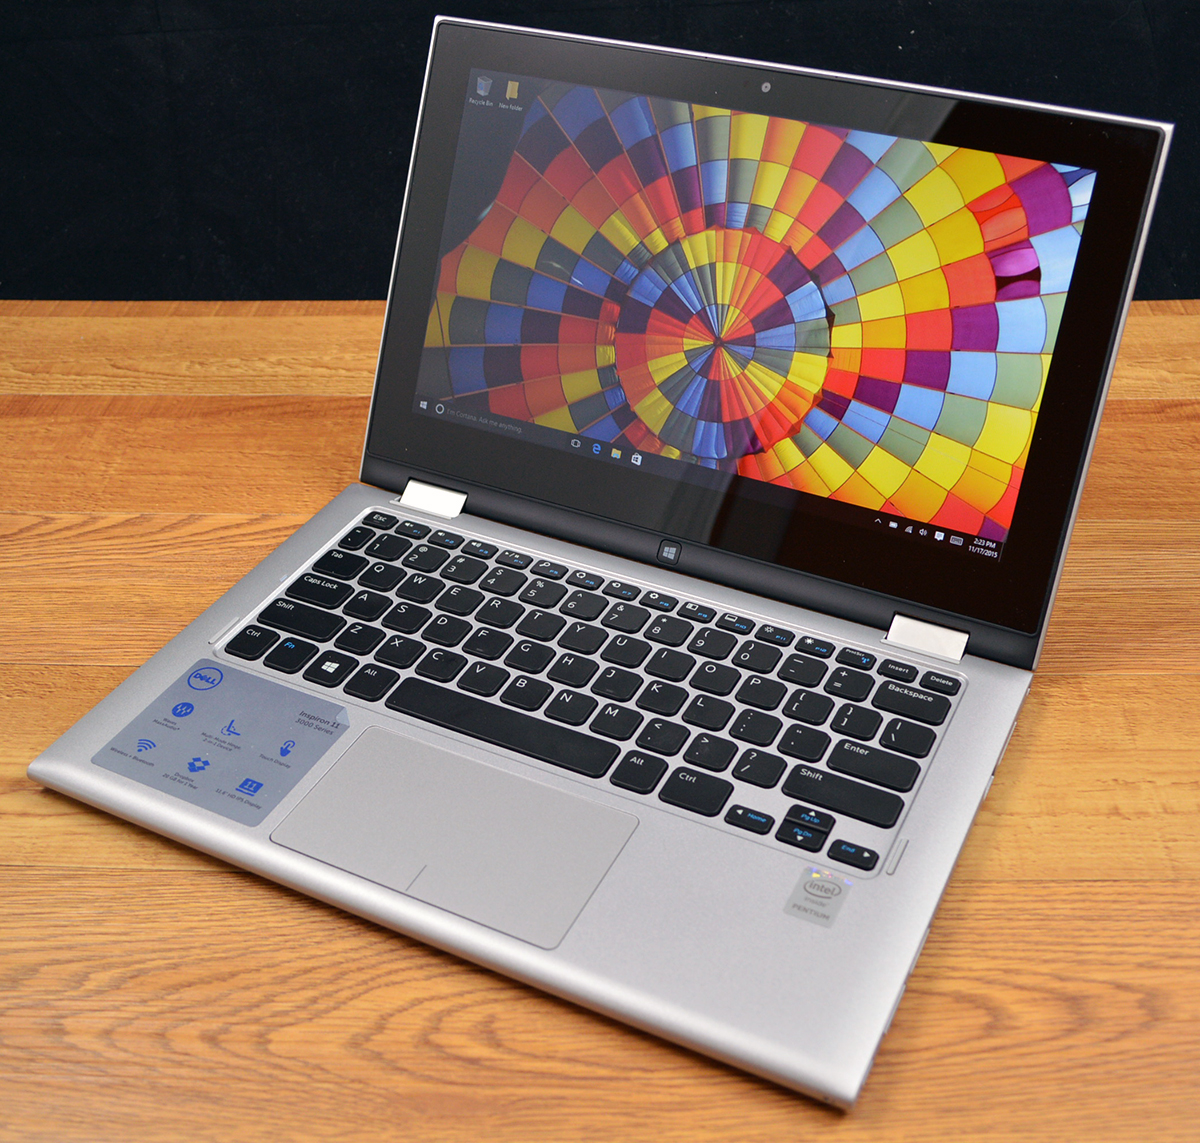 Dell Inspiron 11 3000 Review The Too Pricey Too